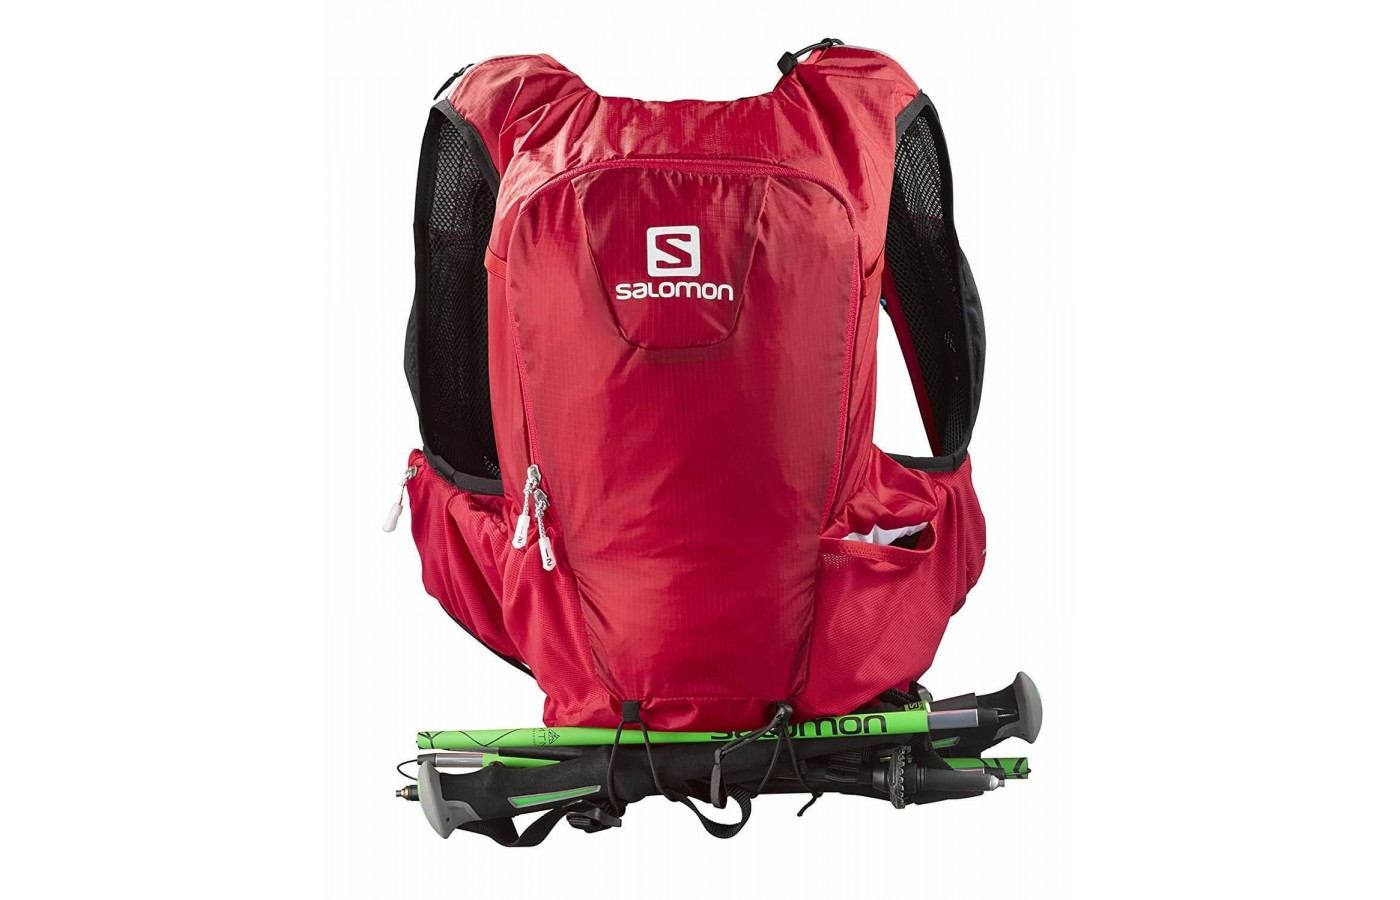 The Salomon Skin Pro 15 can store many accessories